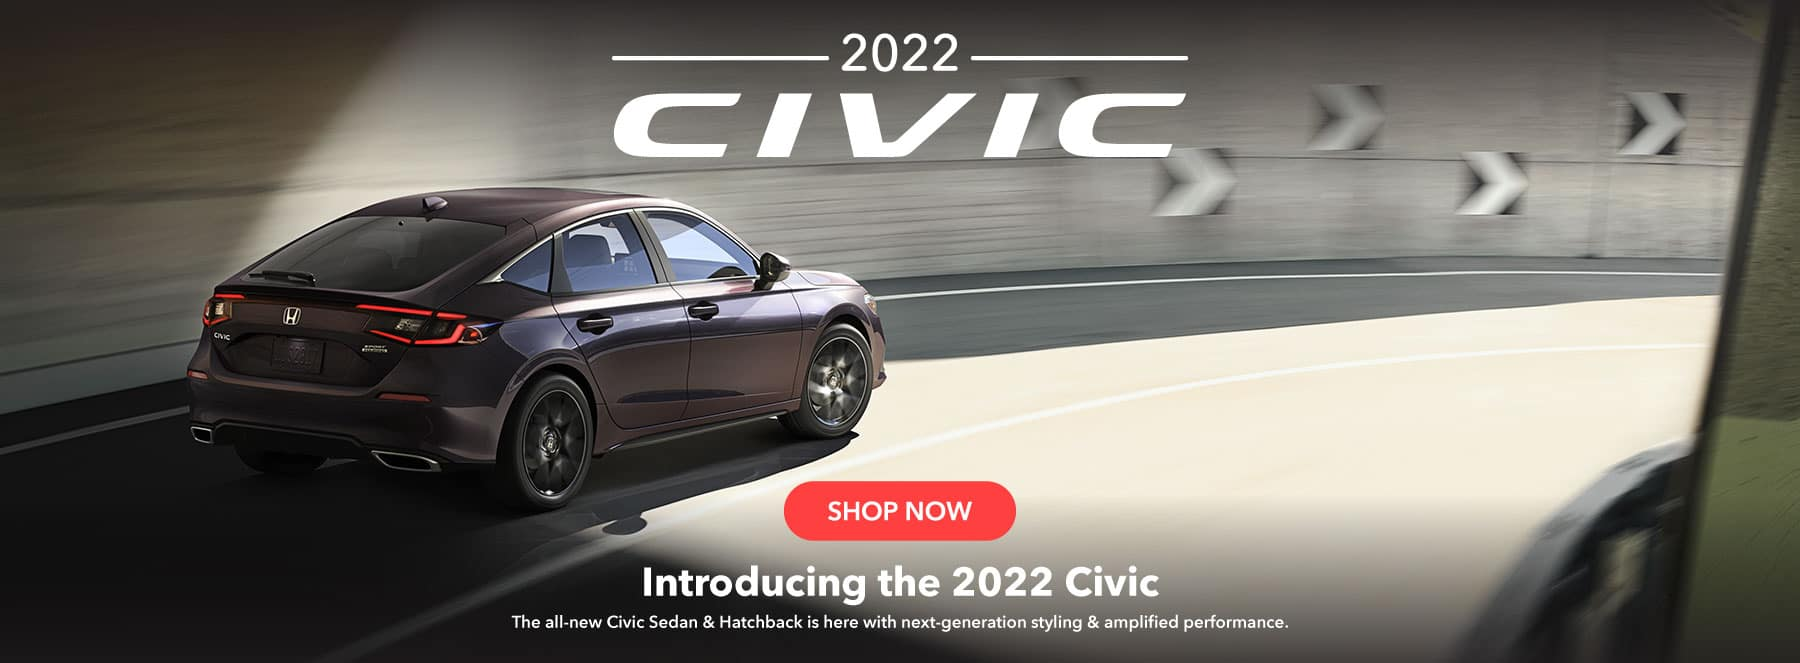 Introducing the 2022 Civic